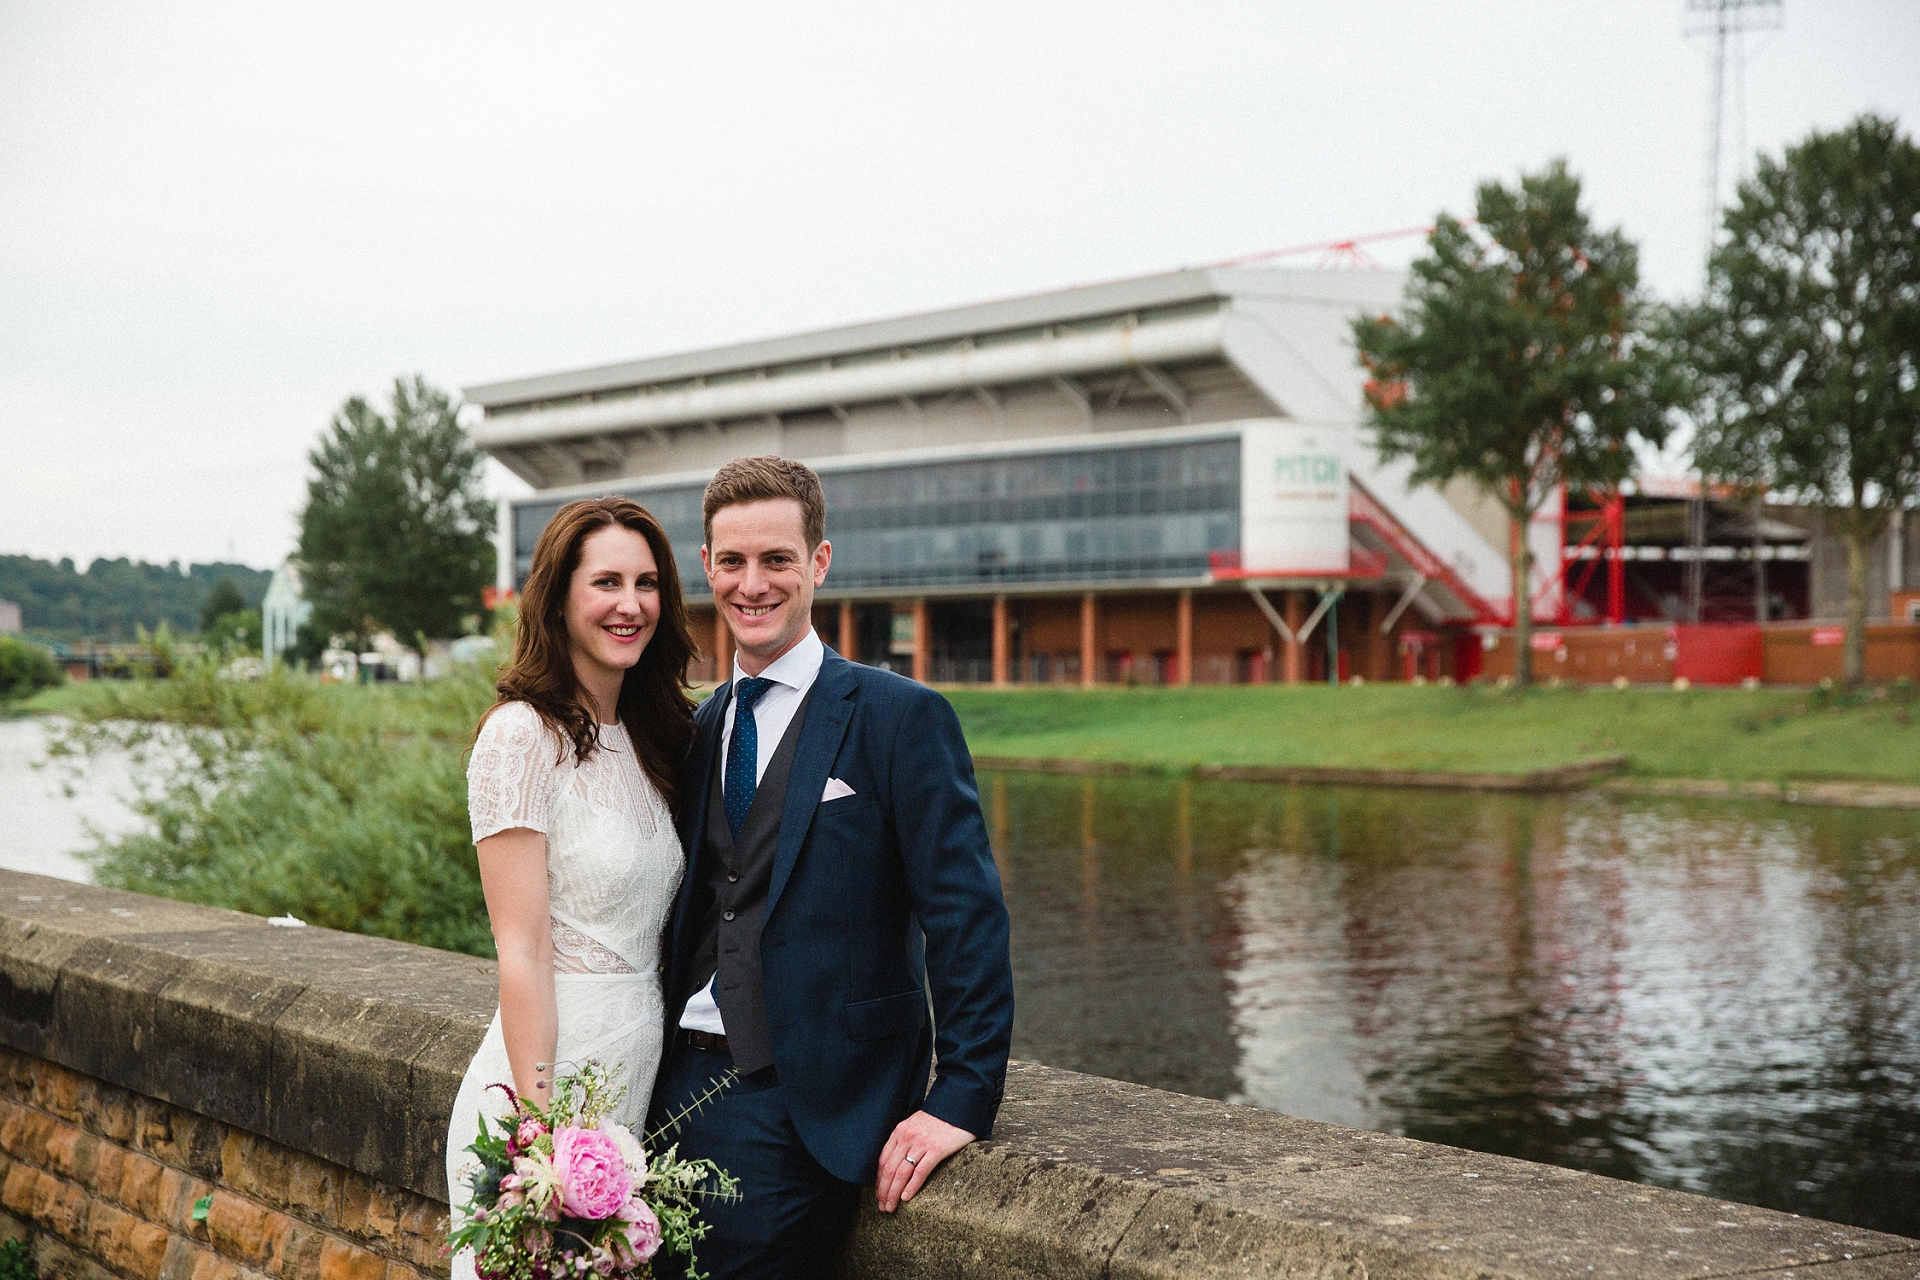 Wedding photographs by the River Trent